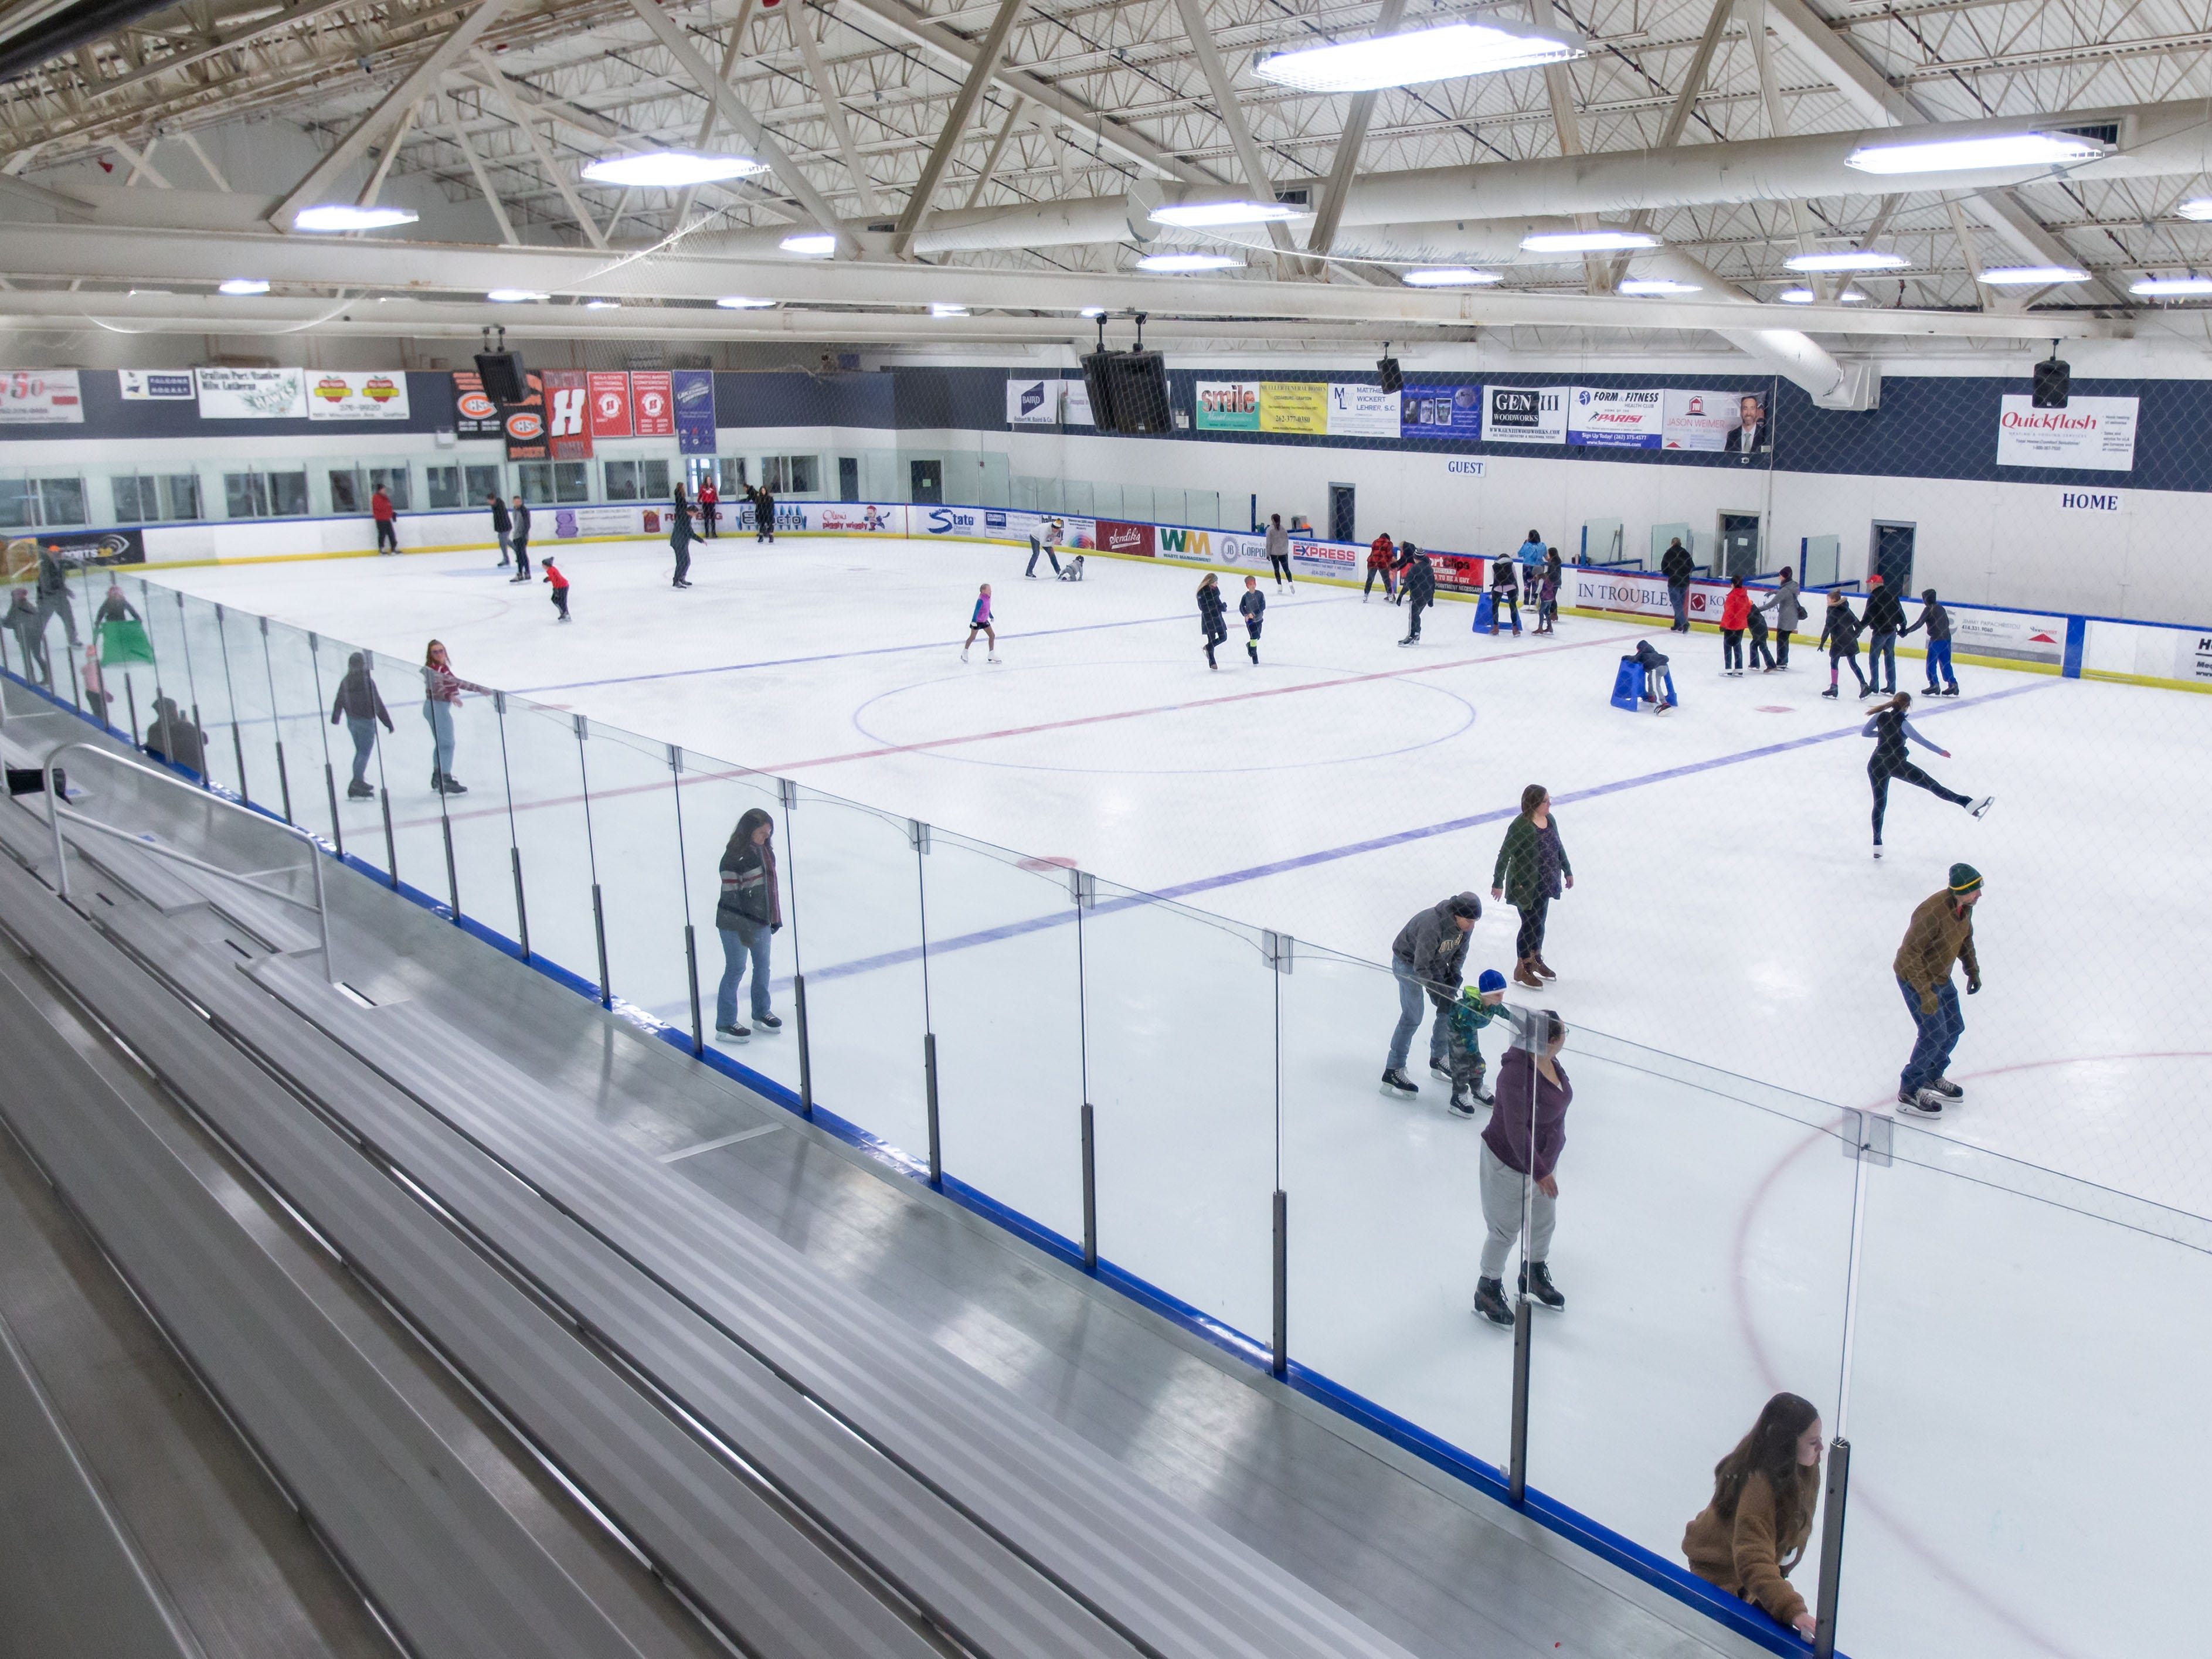 Skating enthusiasts of all skill levels enjoy public skating hours at the Ozaukee Ice Center in Mequon on Saturday, Dec. 22, 2018. The center offers public skating between 12:15 p.m. and 2:15 p.m. on Saturdays and Sundays.